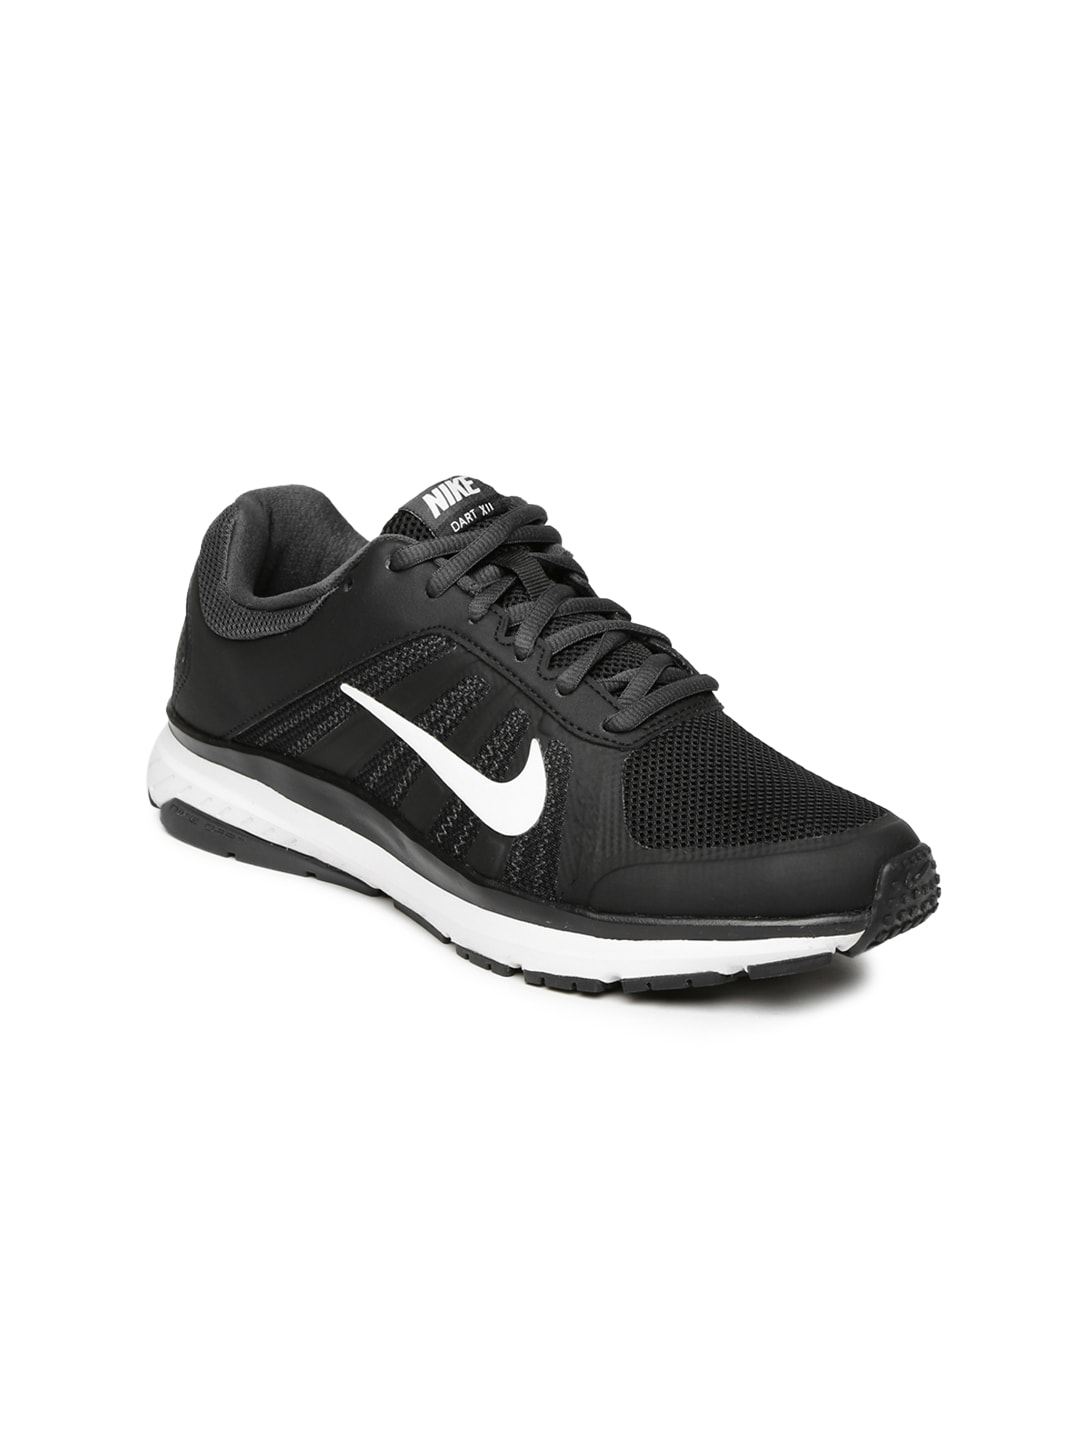 1a60a04ba15 Women s Nike Shoes - Buy Nike Shoes for Women Online in India